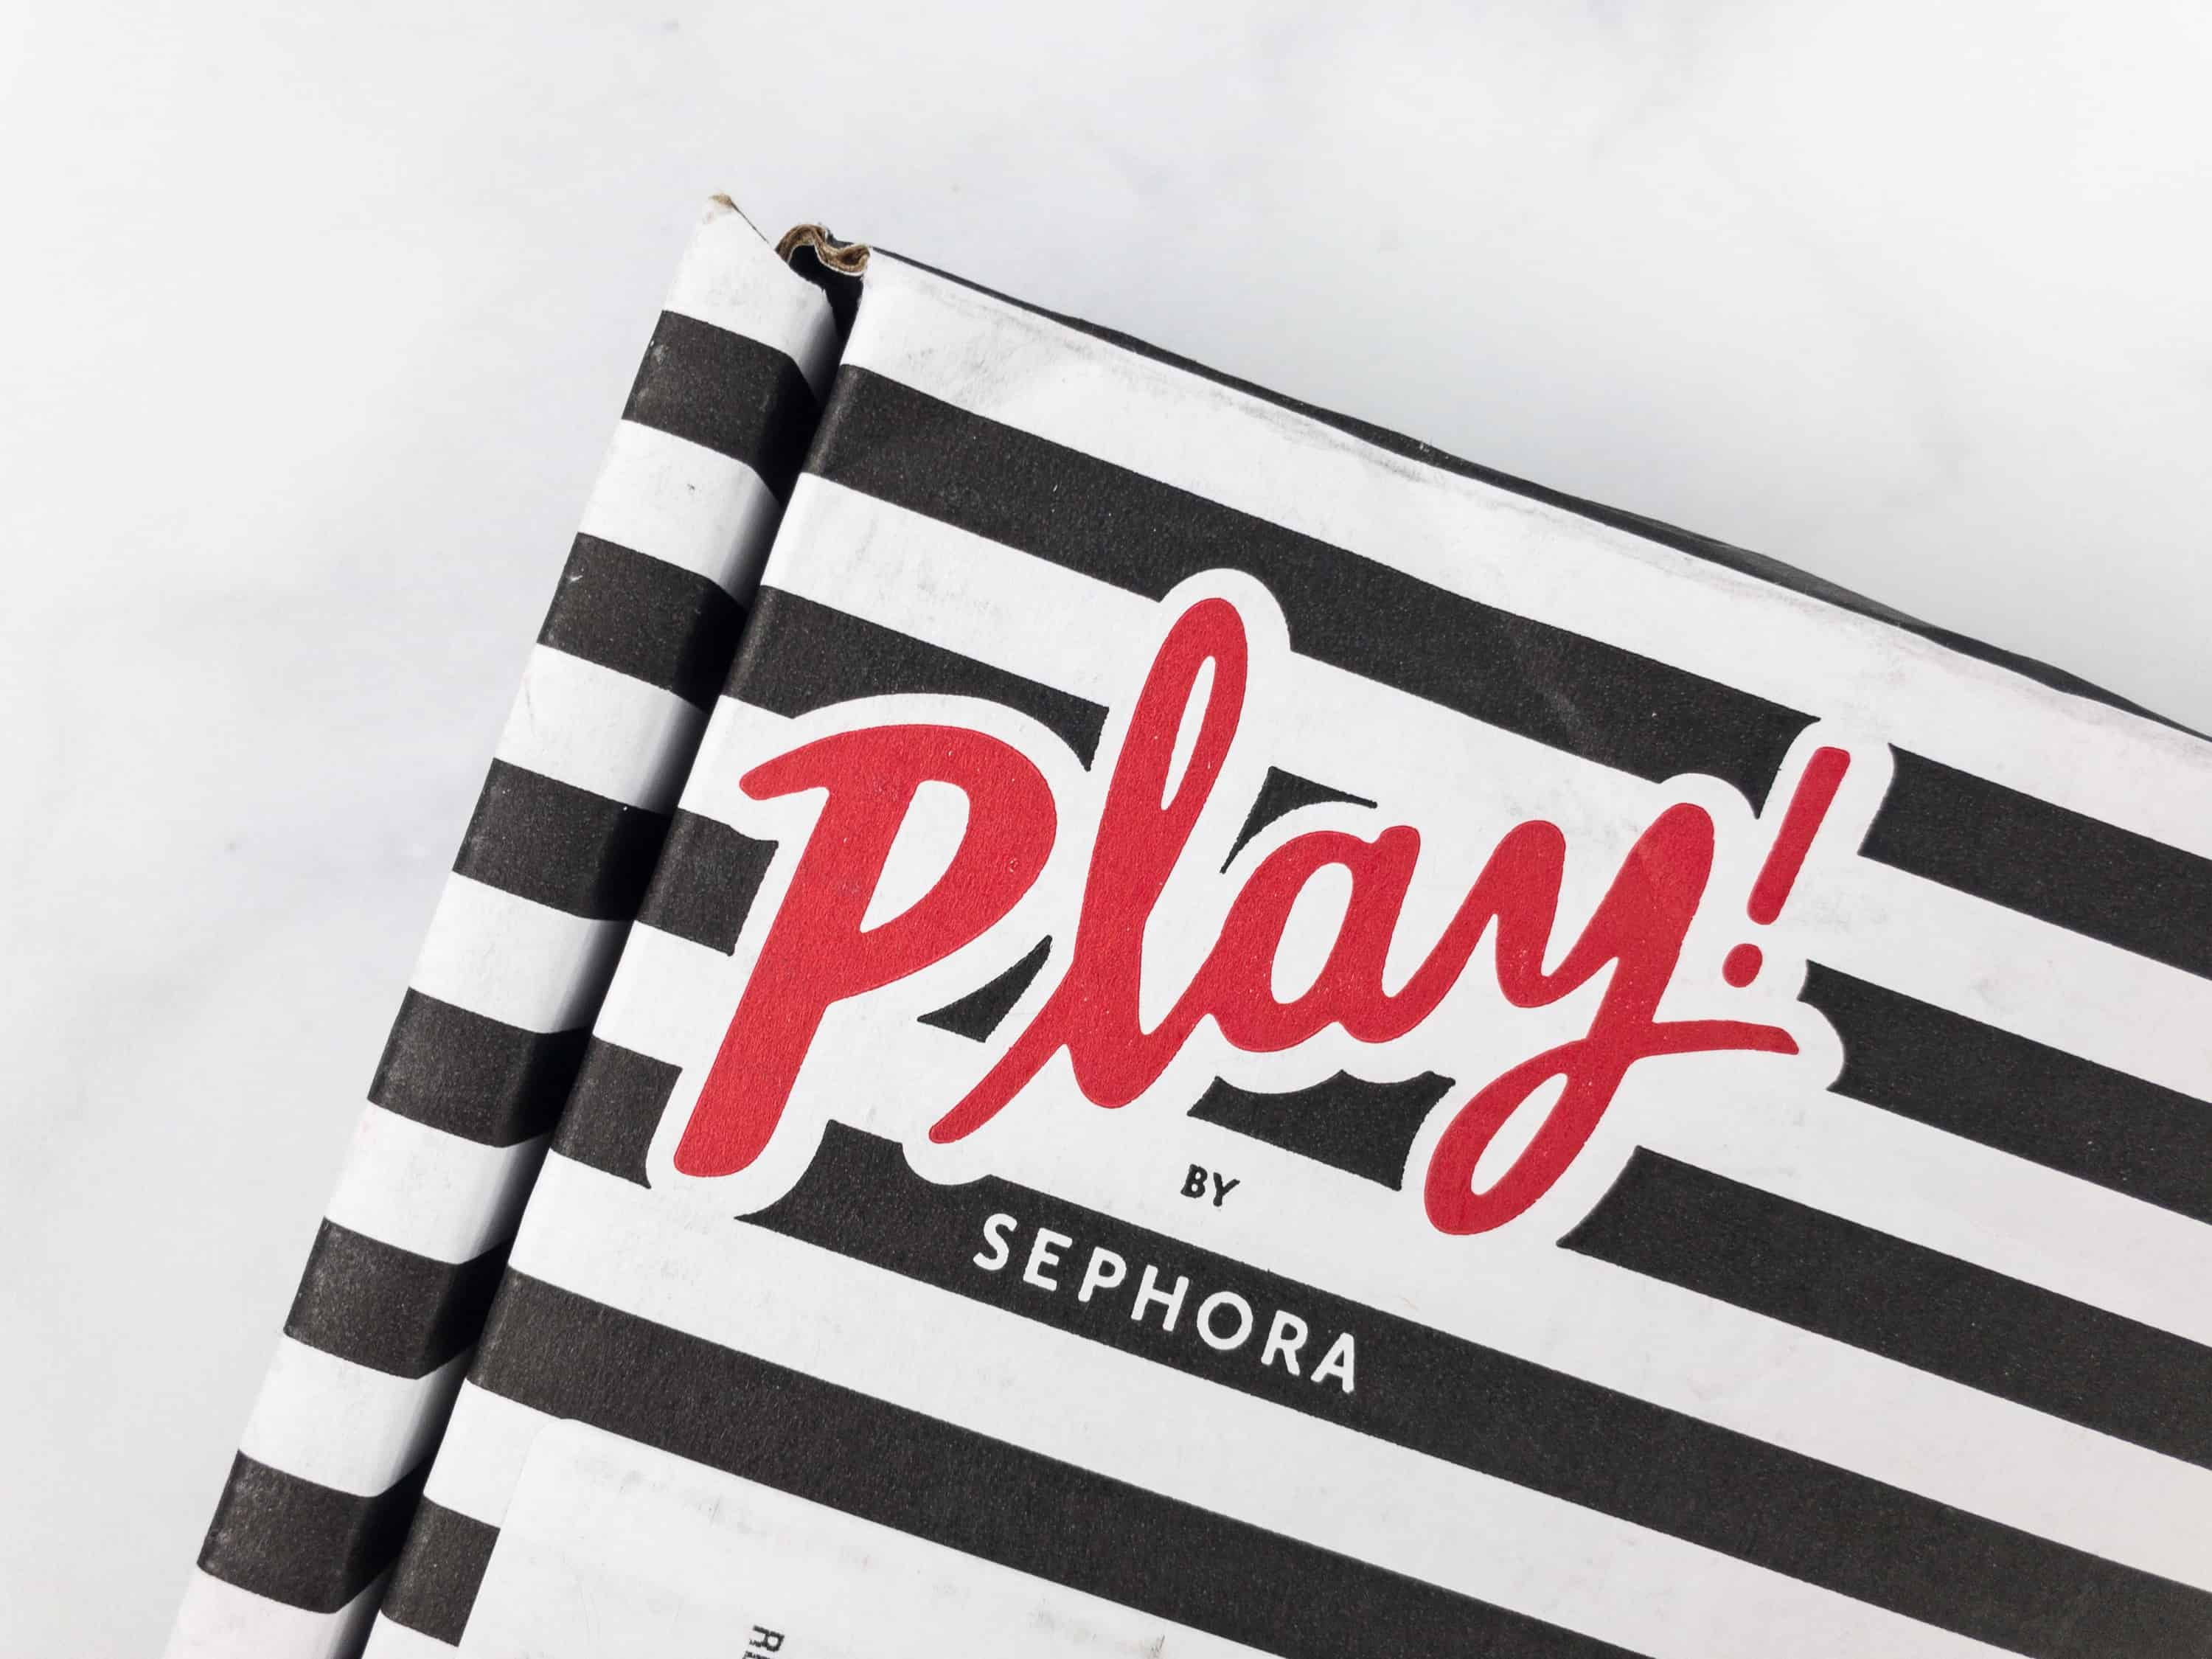 Play! by Sephora February 2018 Subscription Box Review